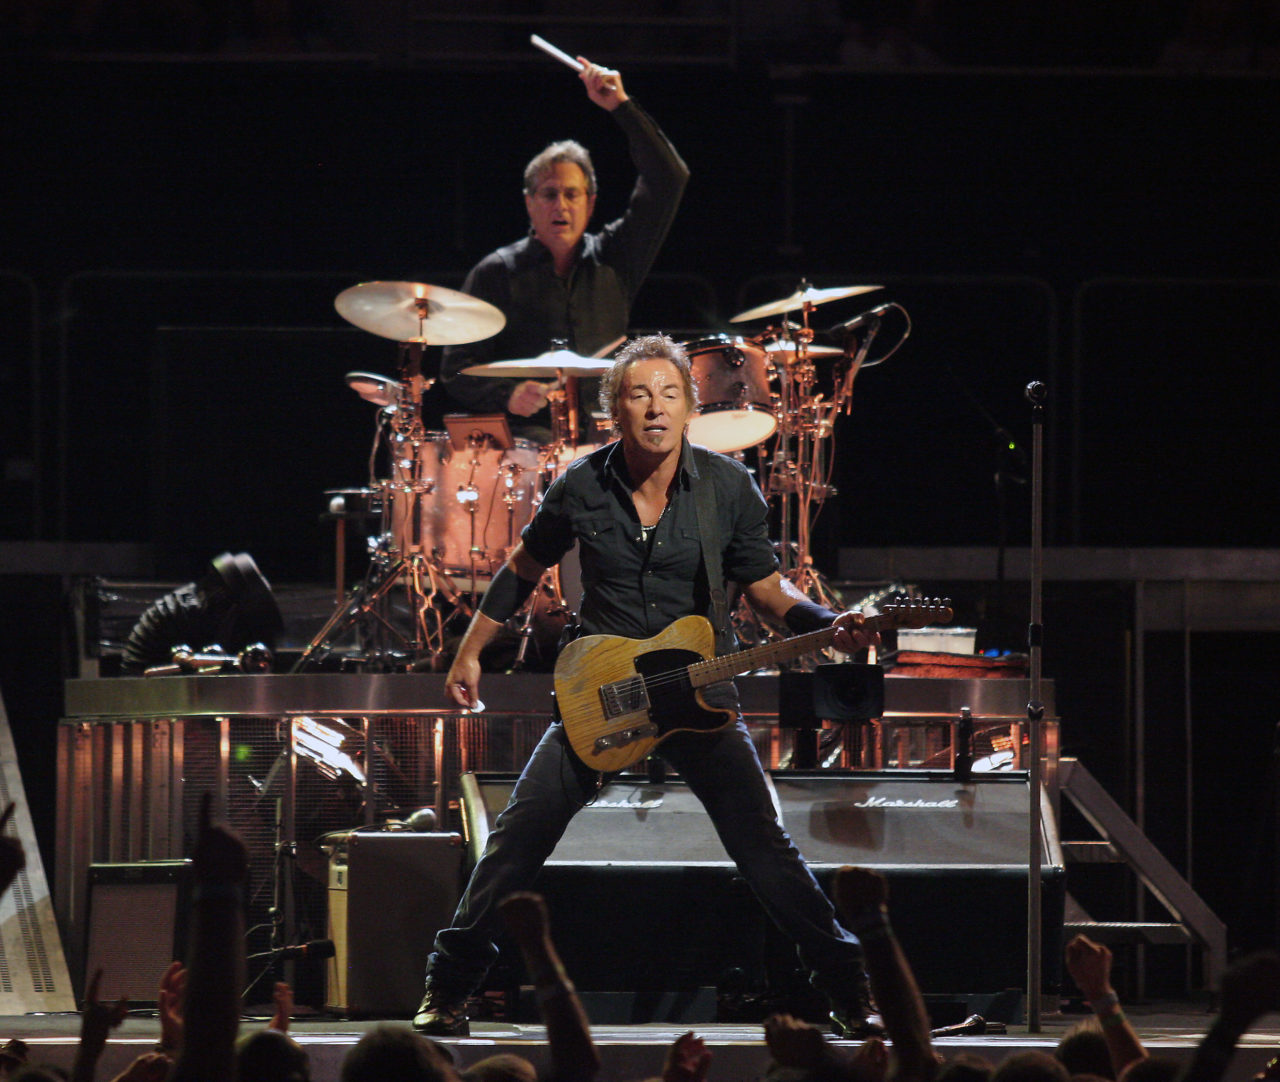 Foto: Craig ONeal - The Boss~Live!, CC BY-SA 2.0/Wikimedia Commons